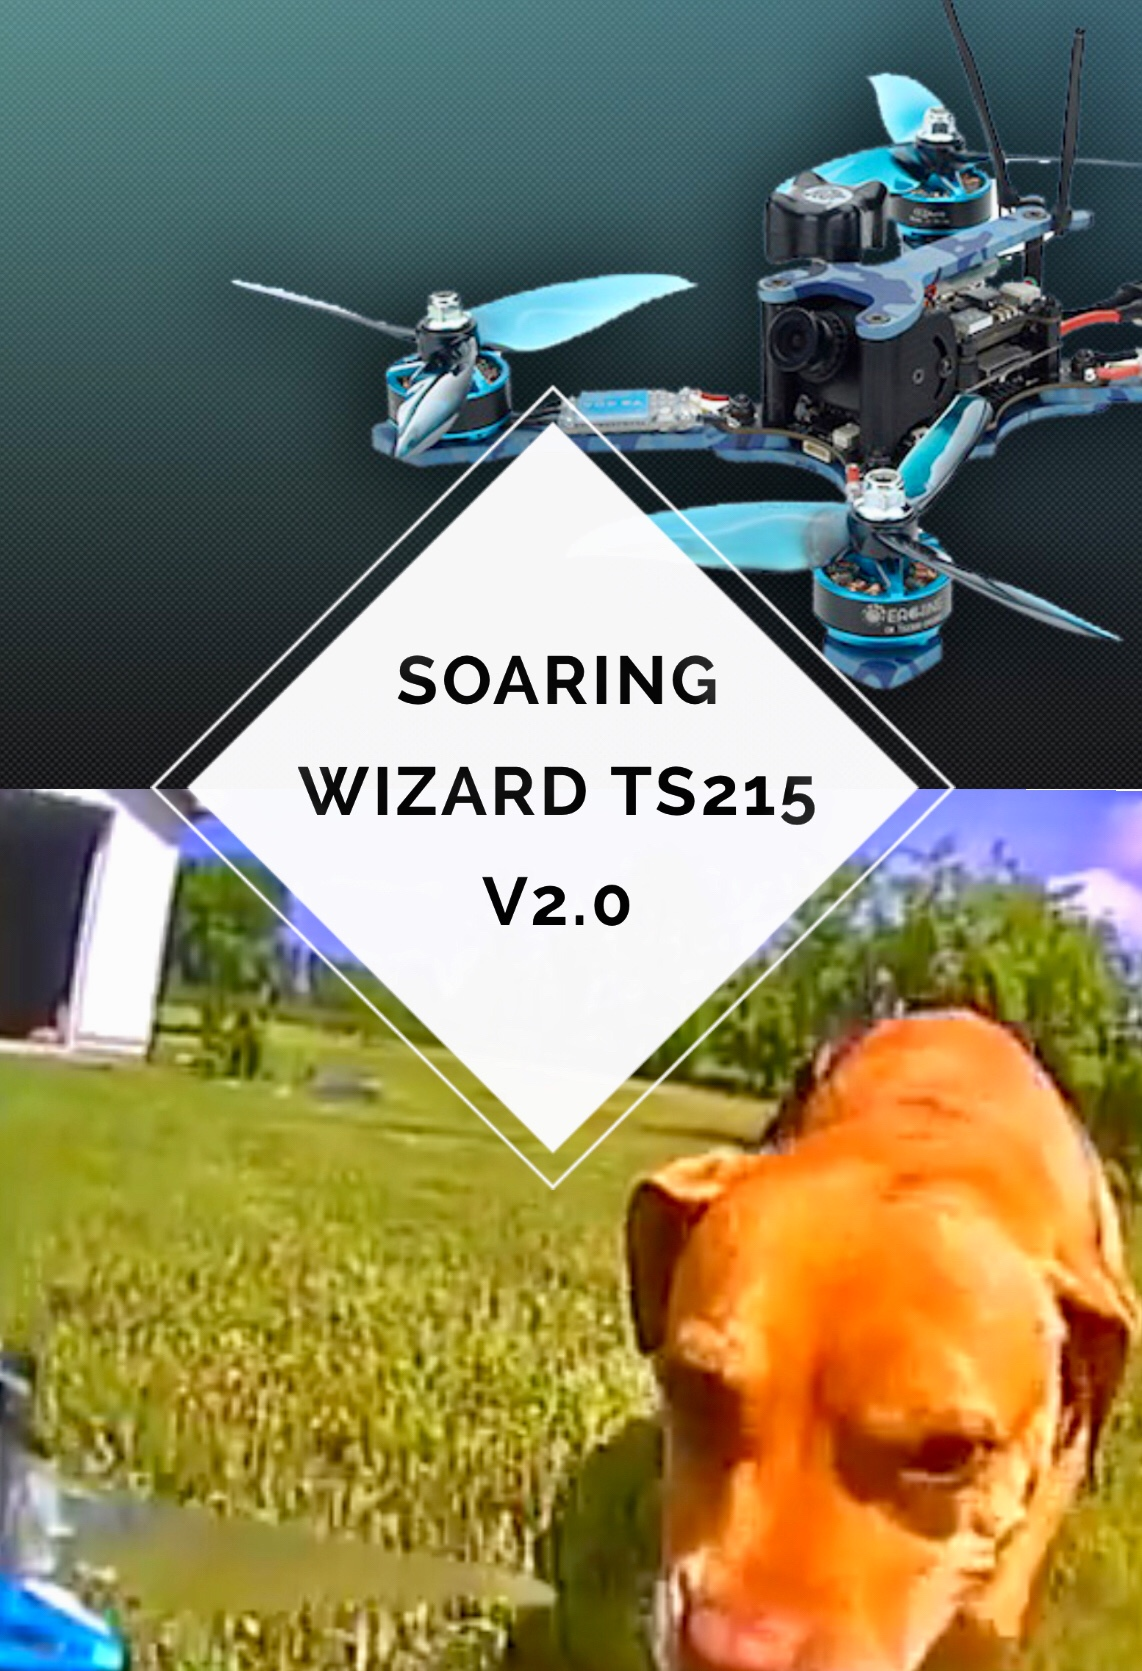 Soaring High With My New Eachine Wizard TS215 V2.0